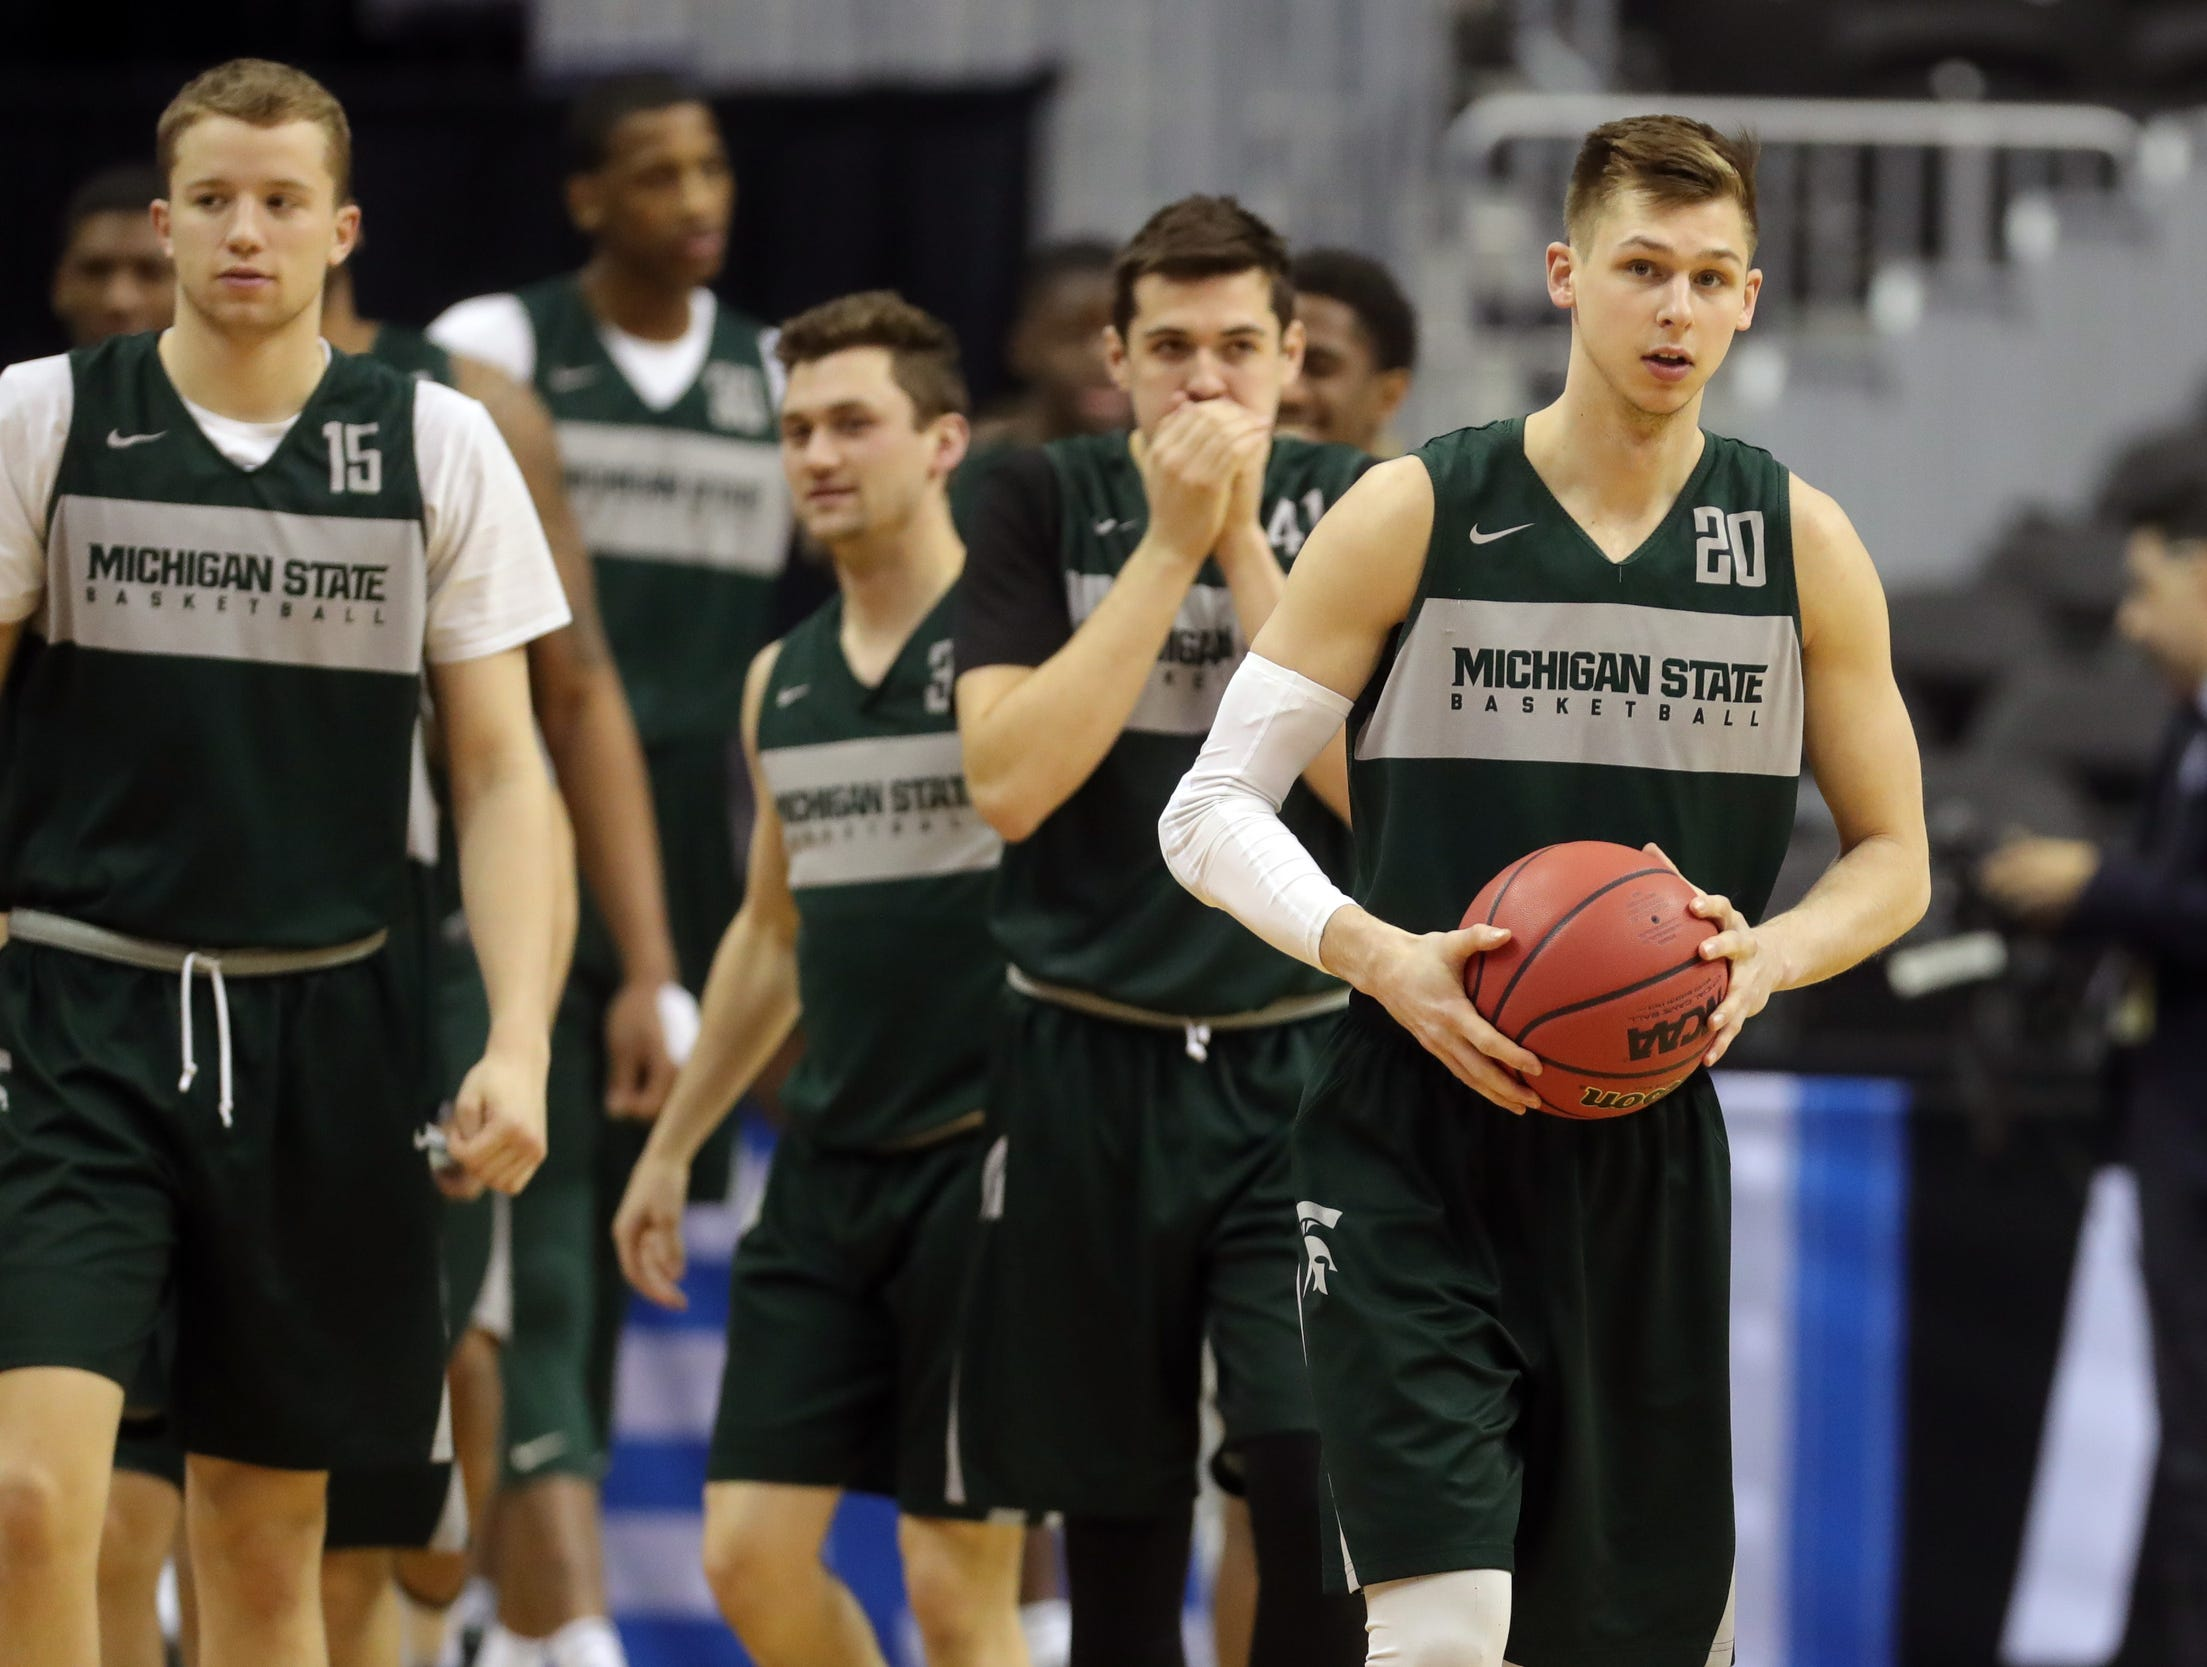 Michigan State guard Matt McQuaid practices for their Sweet 16 game against LSU, Thursday, March 28, 2019 at the Capital One Arena in Washington, D.C.